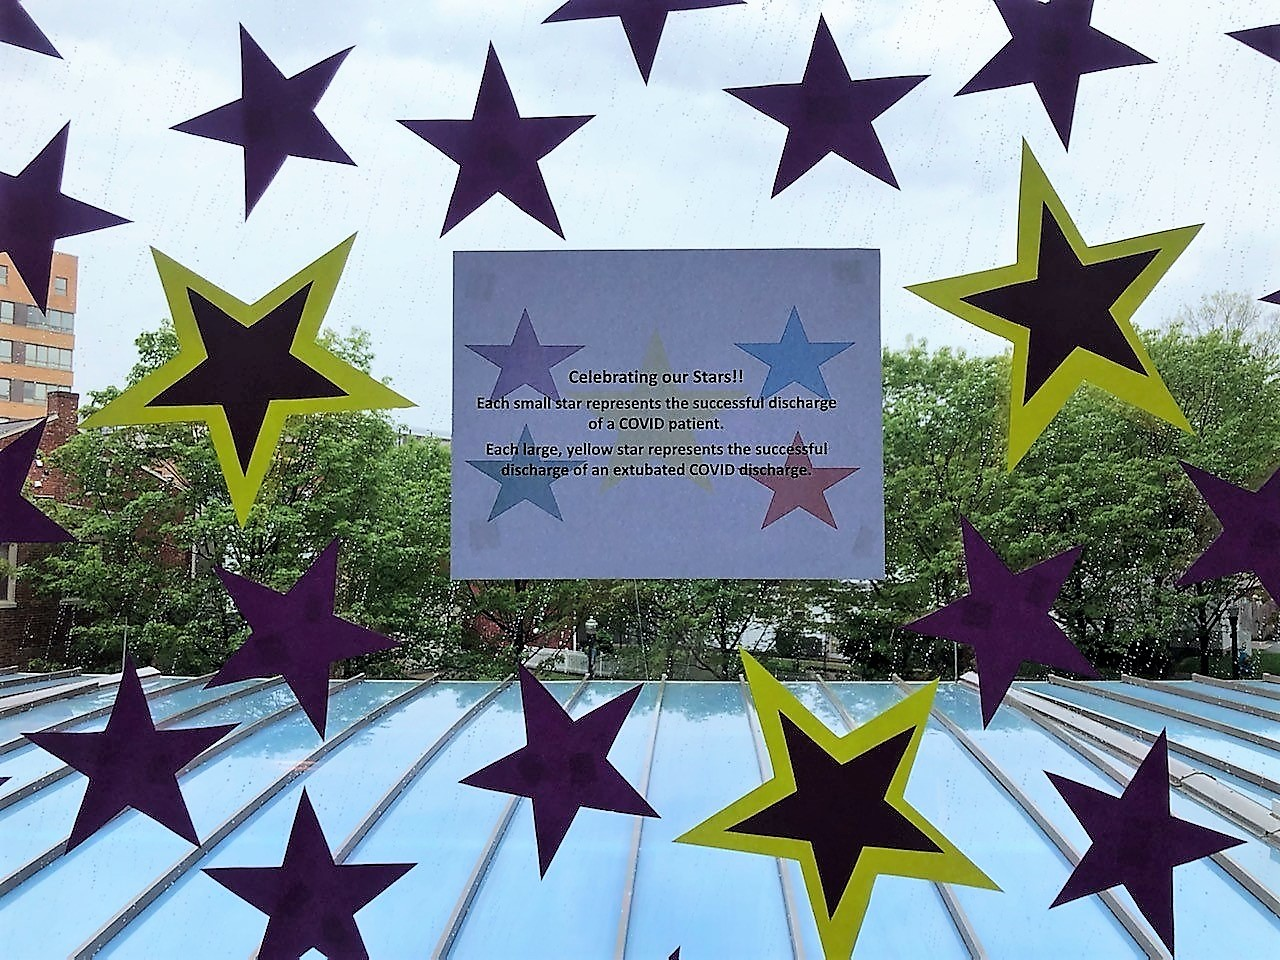 Stars representing recovered Covid-19 inpatients adorn a window at Lancaster General Hospital. Yellow stars denote patients who were intubated. (Source: LGH)